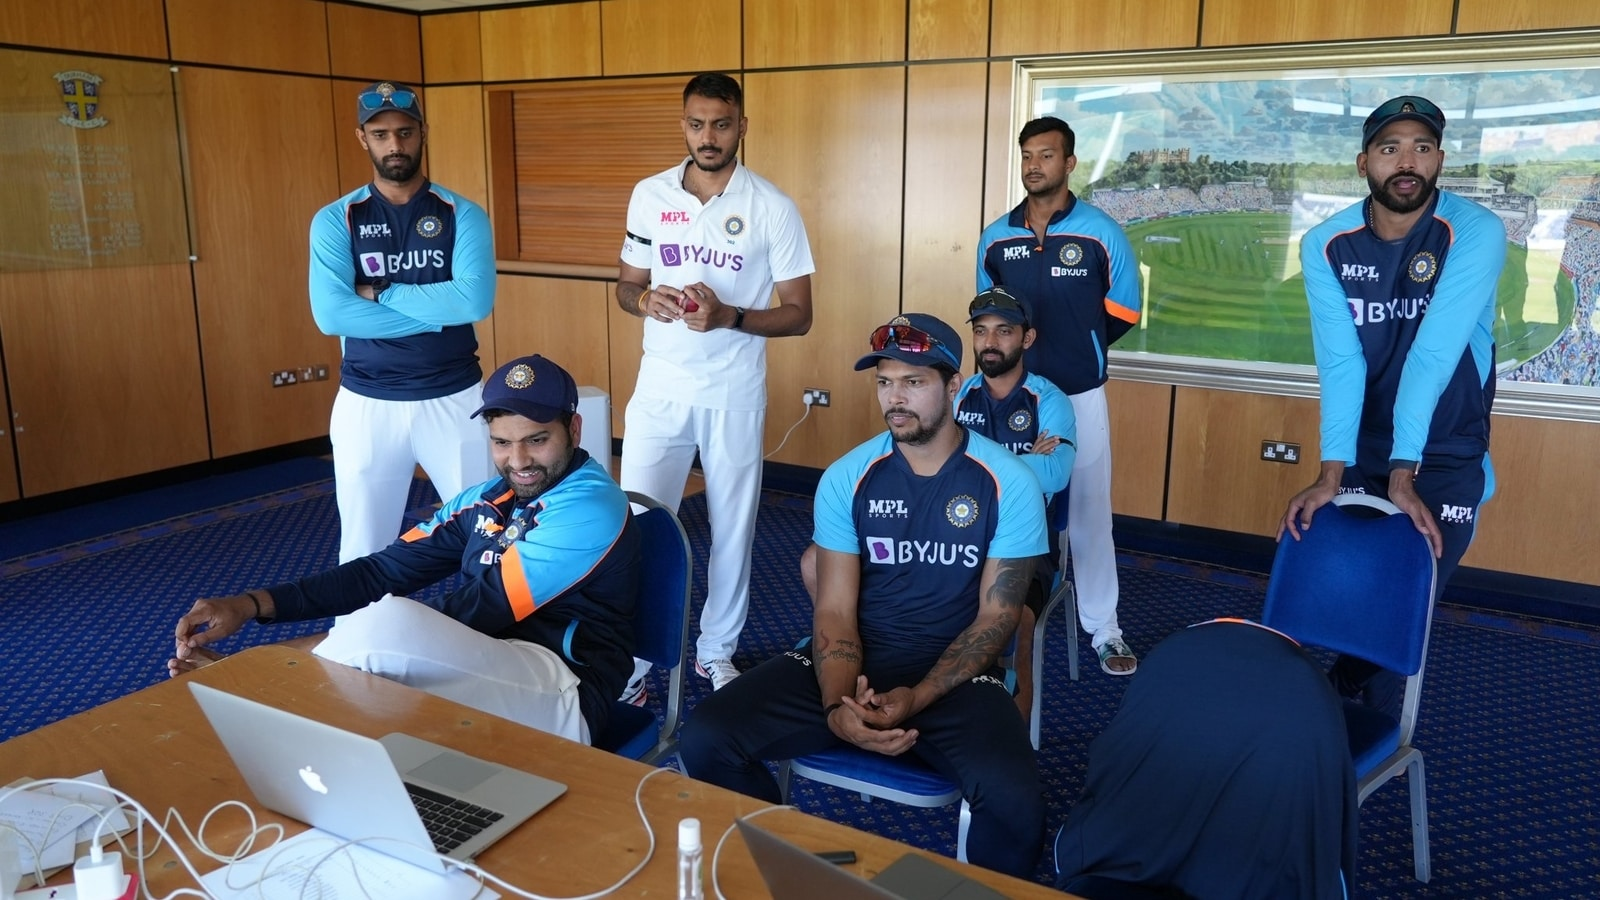 Team India watching Team India': BCCI shares photo of historic moment | Cricket - Hindustan Times